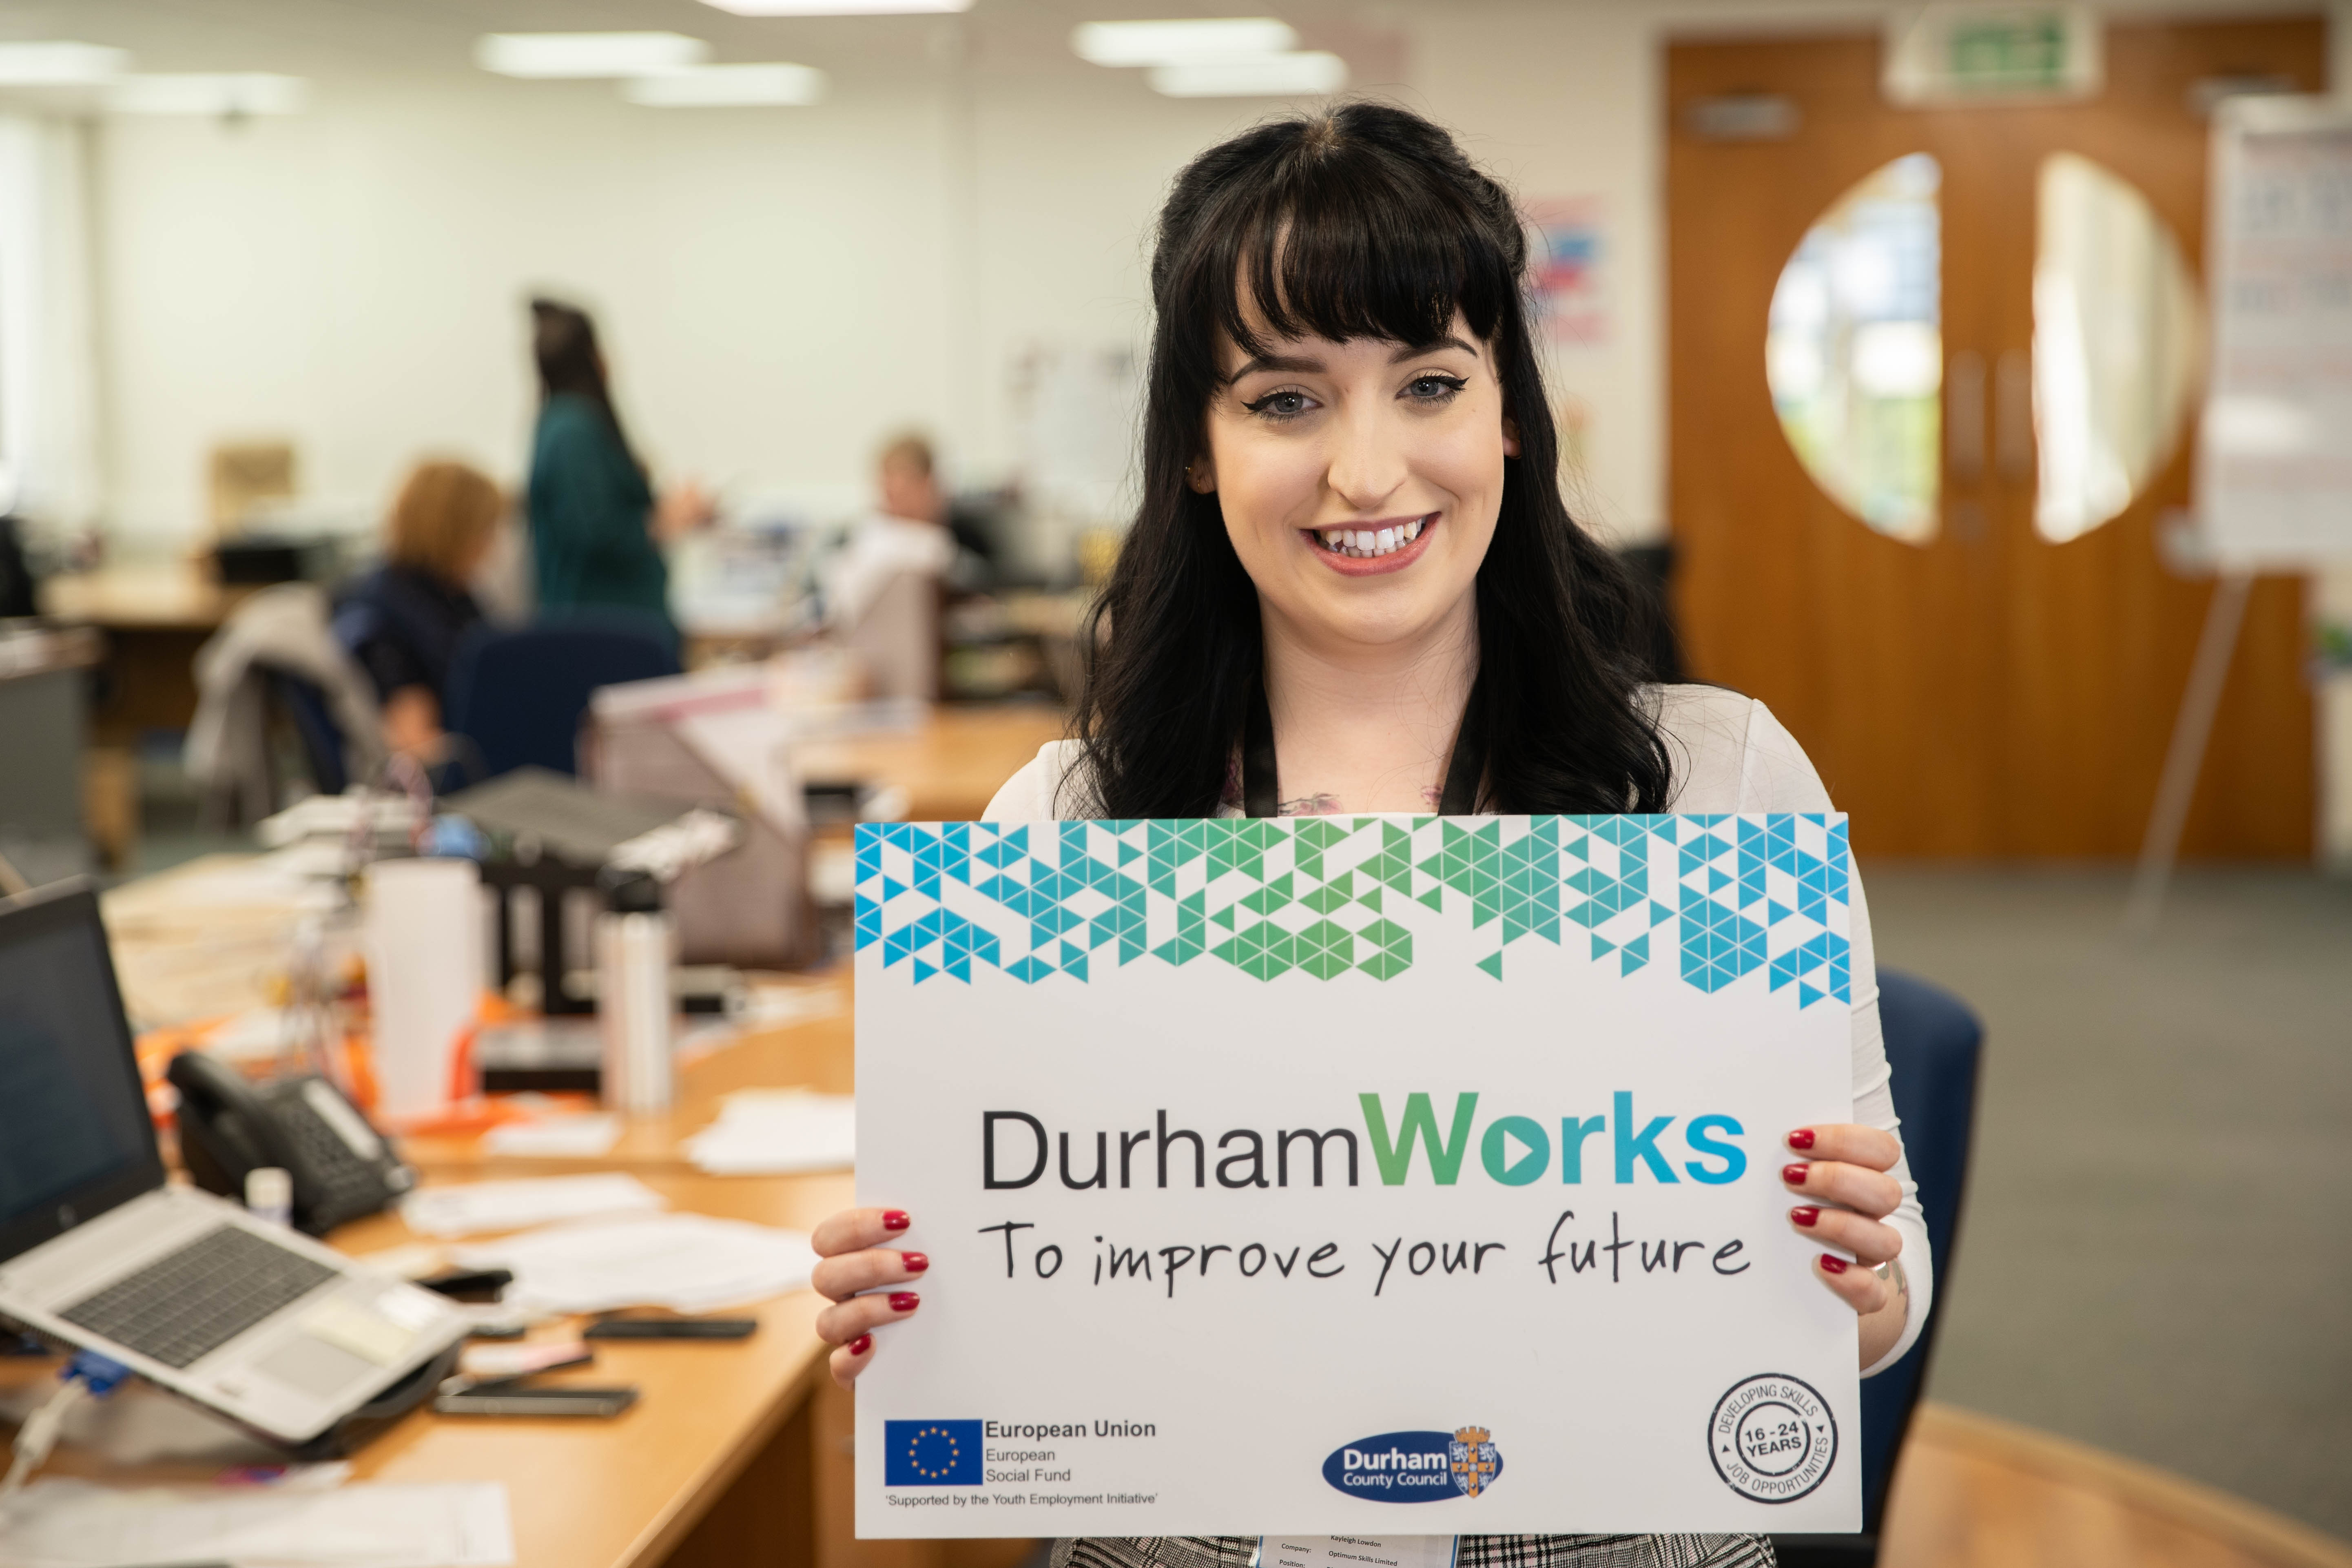 Durhamworks Is Here To Help During These Difficult Times